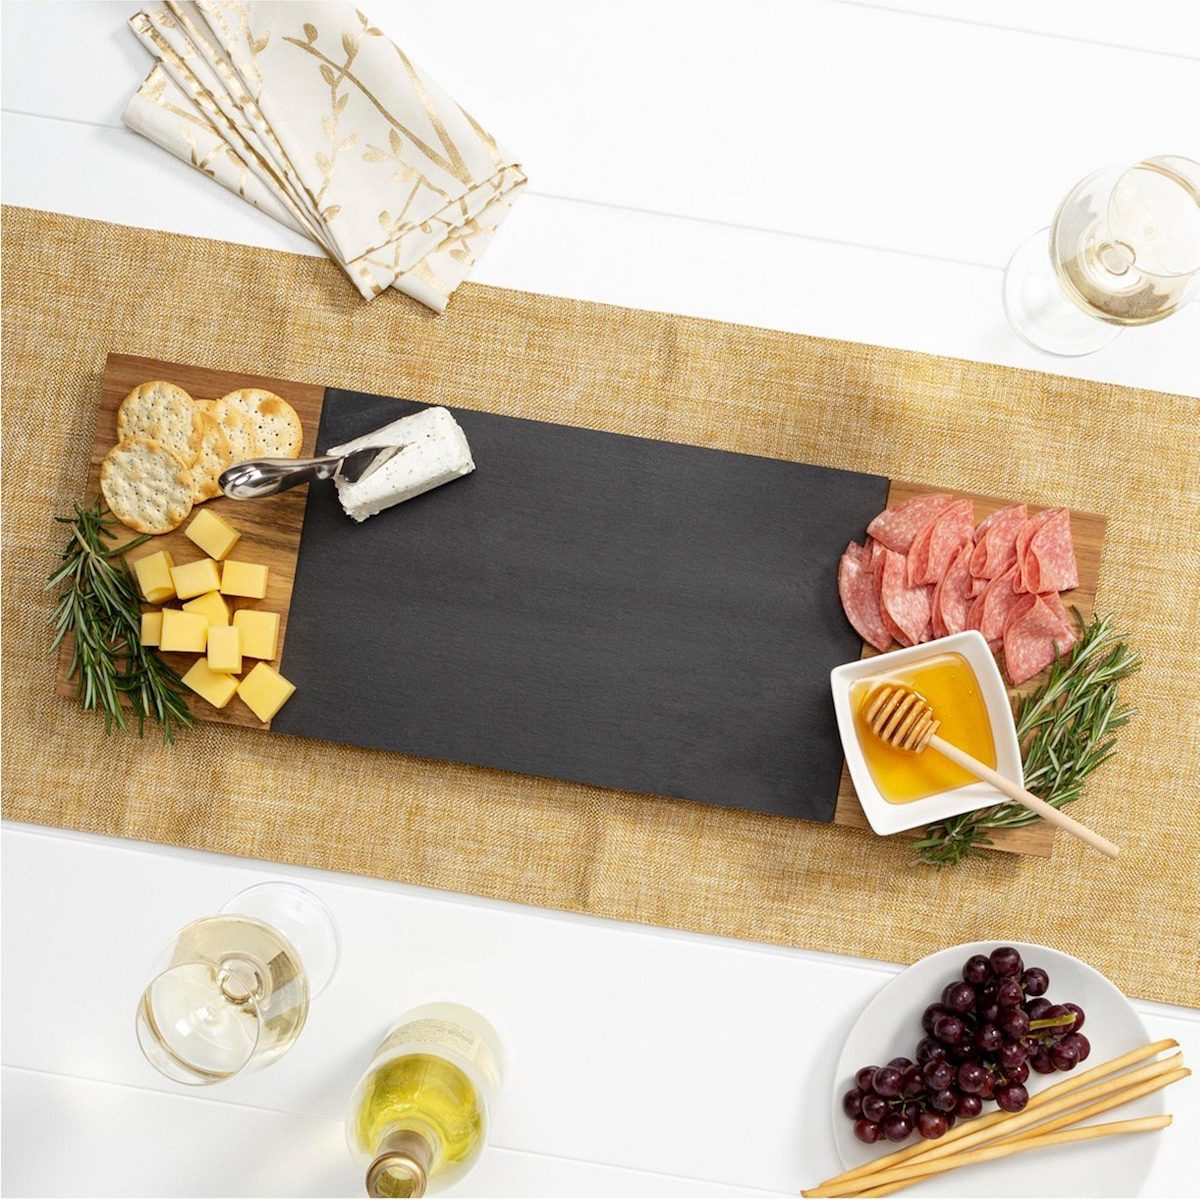 Cheese and Charcuterie Serving Board